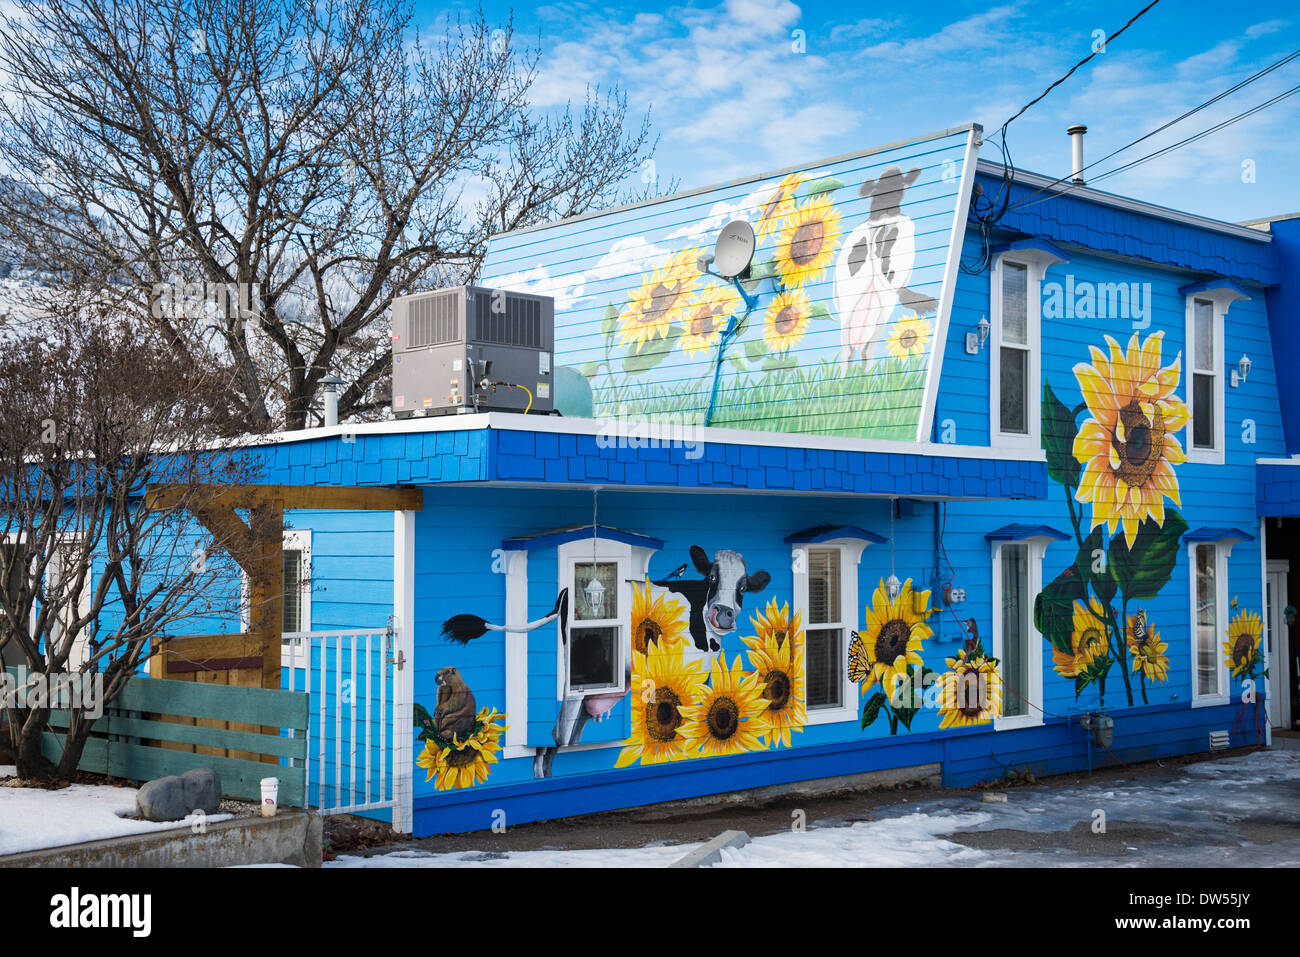 House painted with sunflowers and cows, Cache Creek, British Columbia, Canada - Stock Image